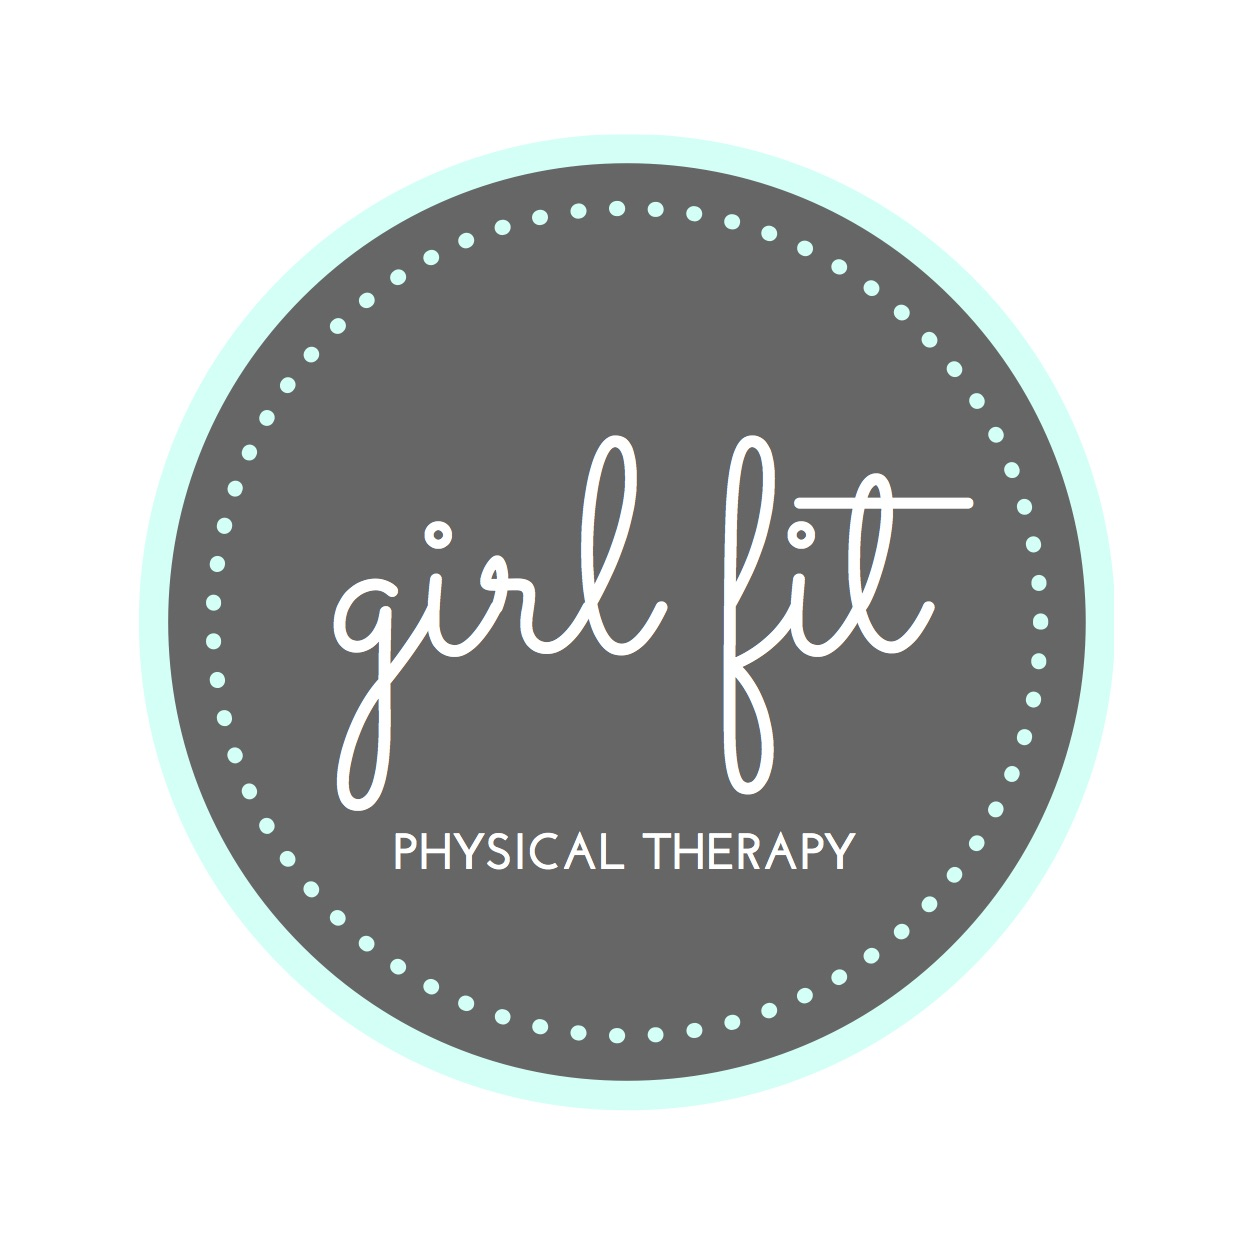 Girl Fit grey mint.jpg